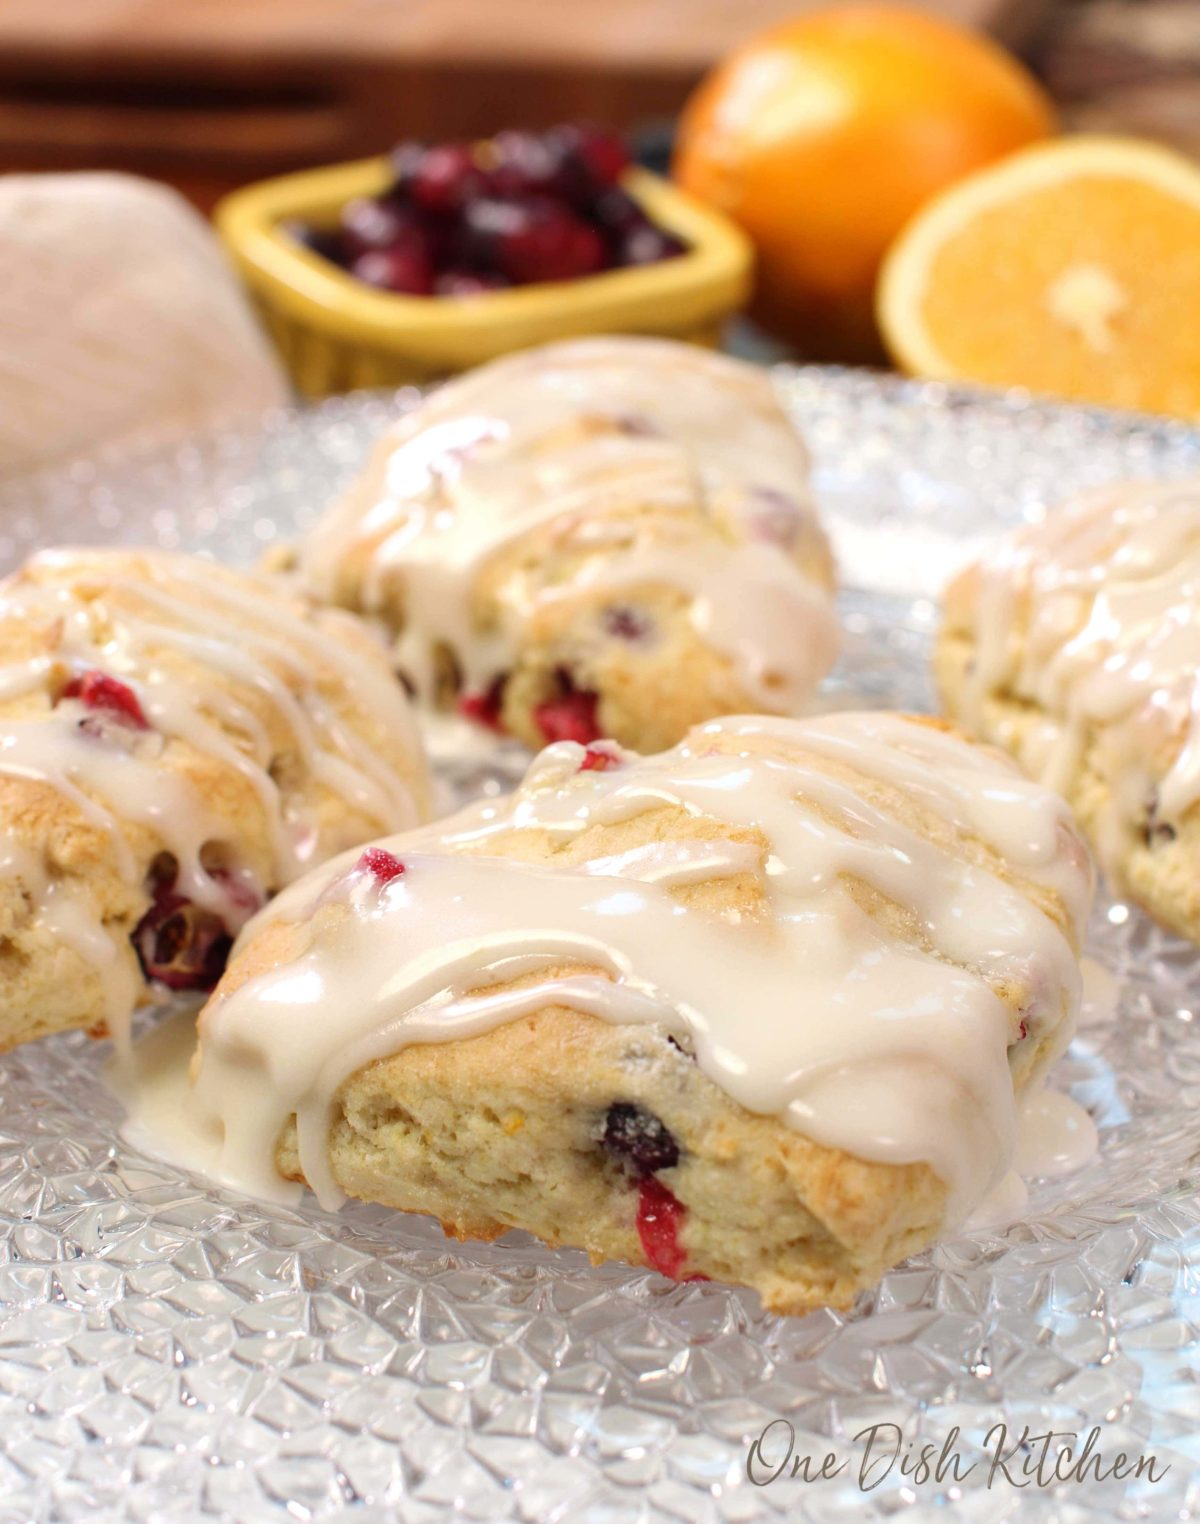 cranberry orange scones on a clear plate next to a bowl of fresh cranberries.